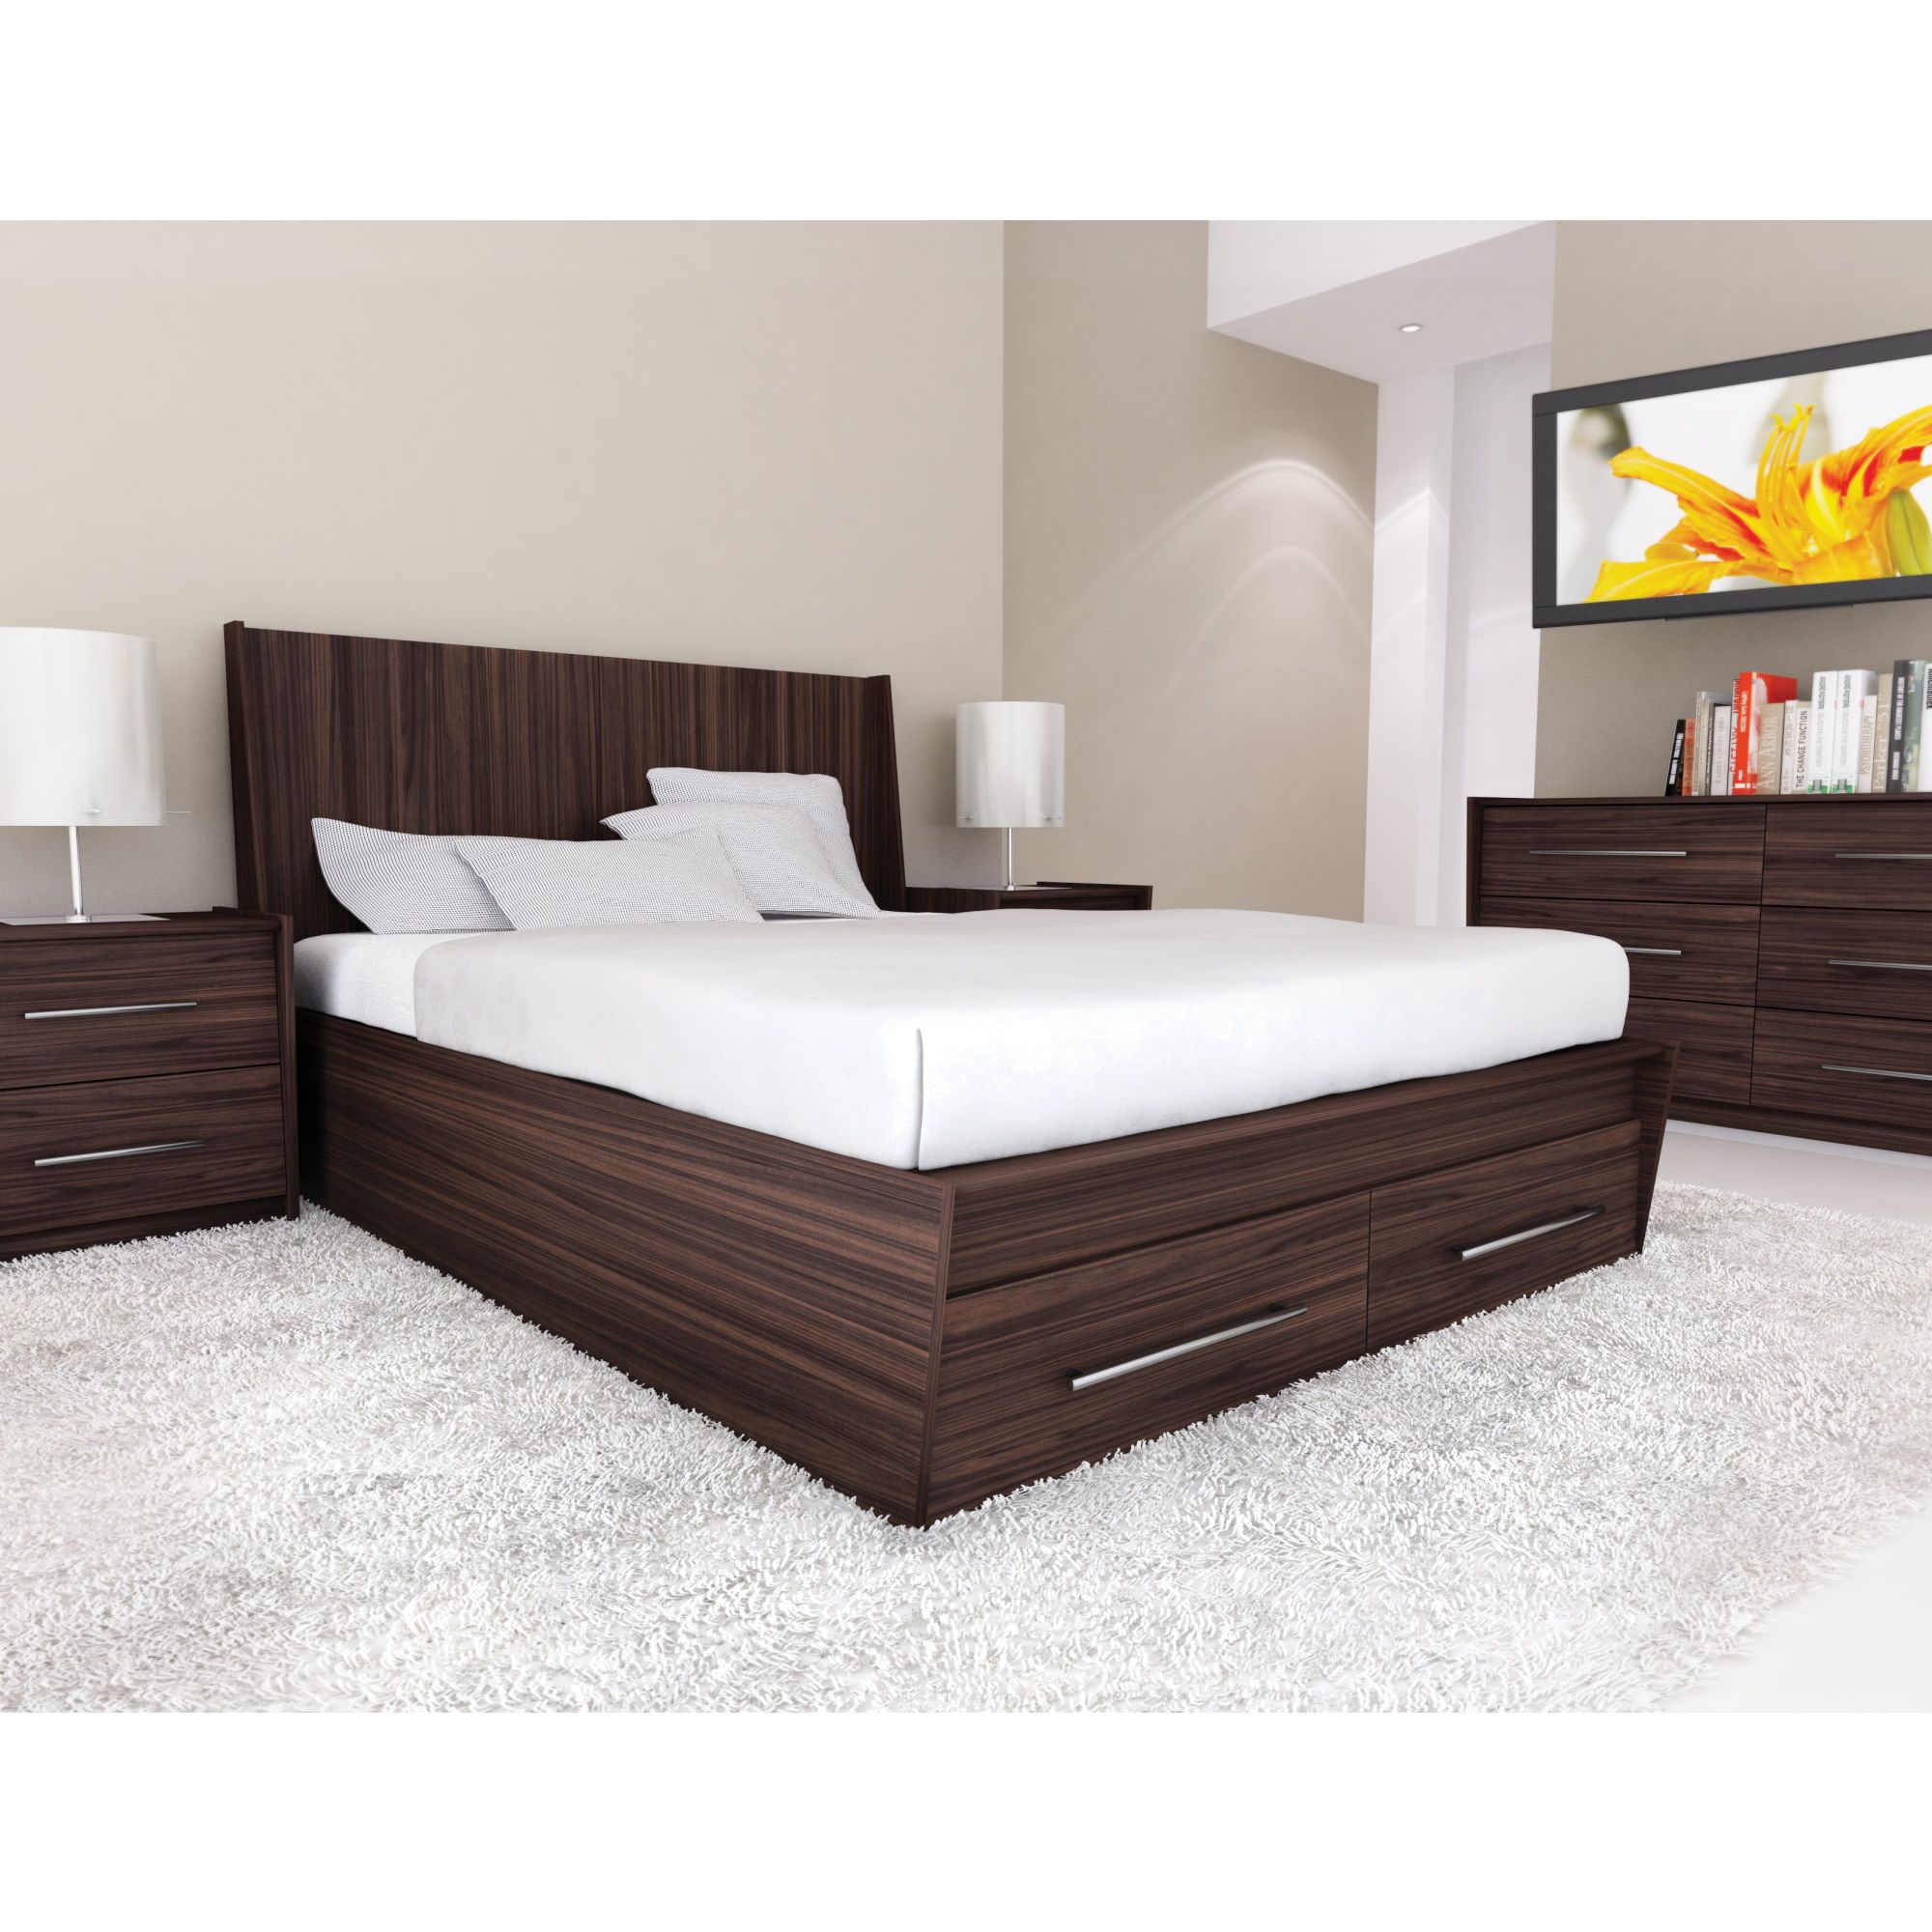 Bed Designs for Your Comfortable Bedroom Interior Design Ideas Wooden  Double Bed Designs For Homes With. Bed Designs for Your Comfortable Bedroom Interior Design Ideas